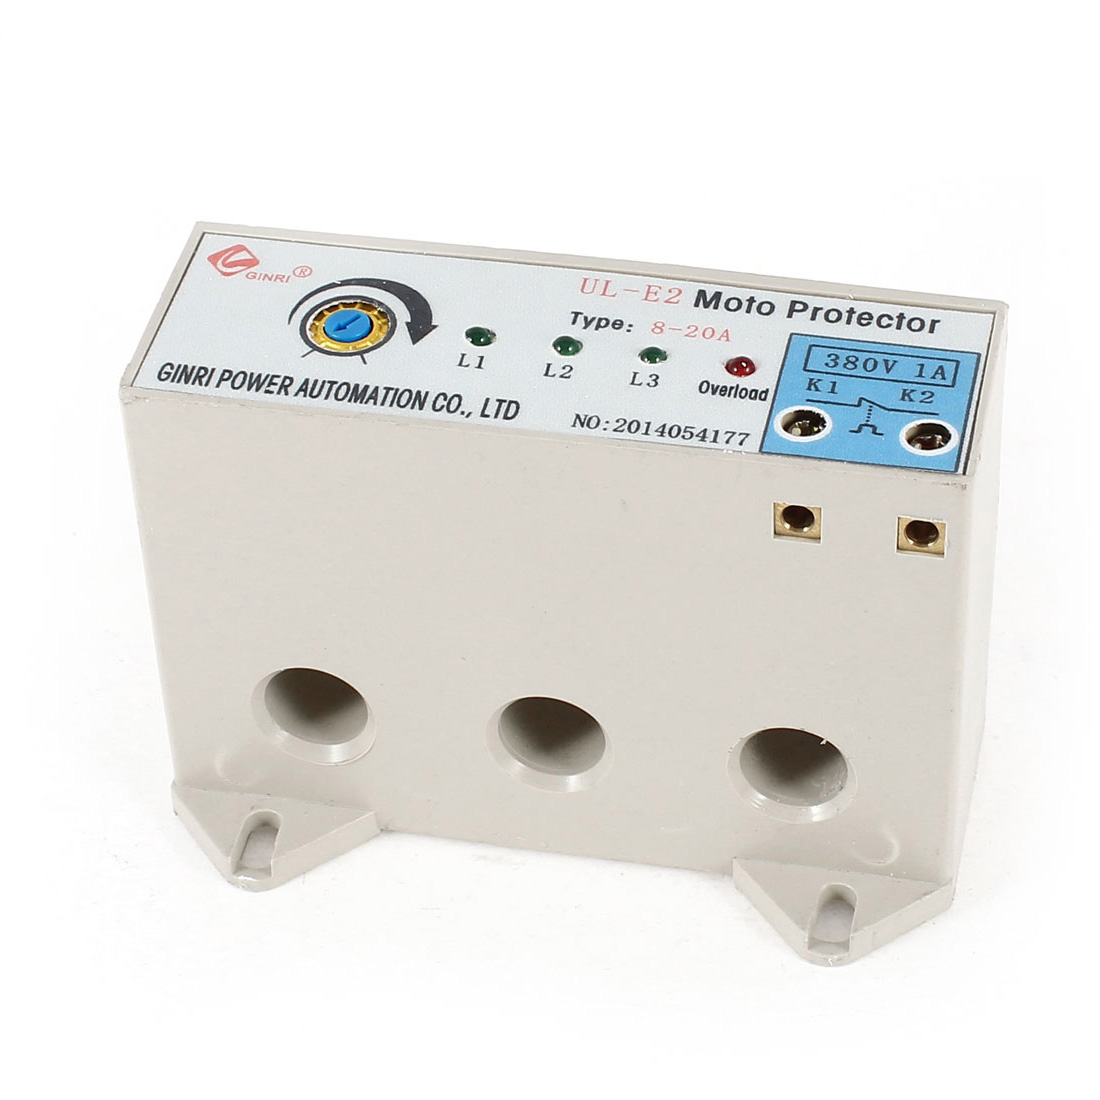 UL-E2/8-20A 3 Phase 8-20 Ampere Adjustable Current Breaker Motor Circuit Protector Non Power